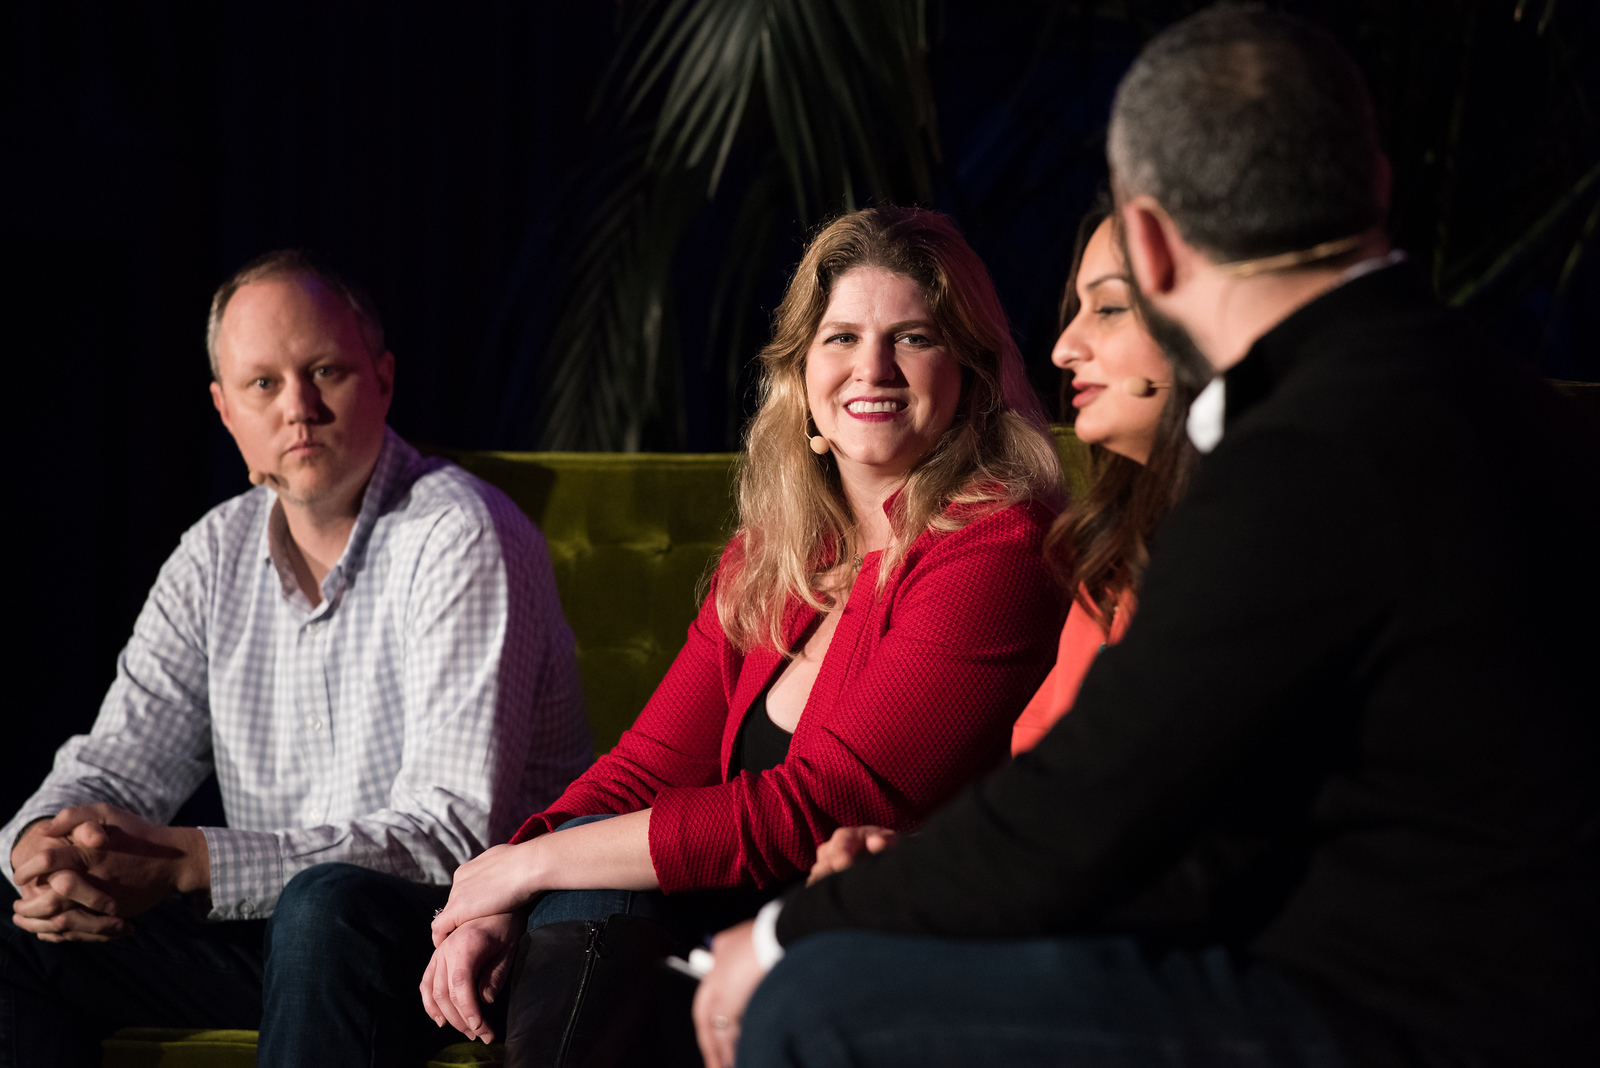 How to Actually Get More Leads: From The Veterans Menaka Shroff HEAD OF MARKETING / BETTERWORKS  Jen Grant CMO / LOOKER  JD Peterson FORMER CMO / TRELLO  Joe Chernov VP MARKETING / INSIGHTSQUARED